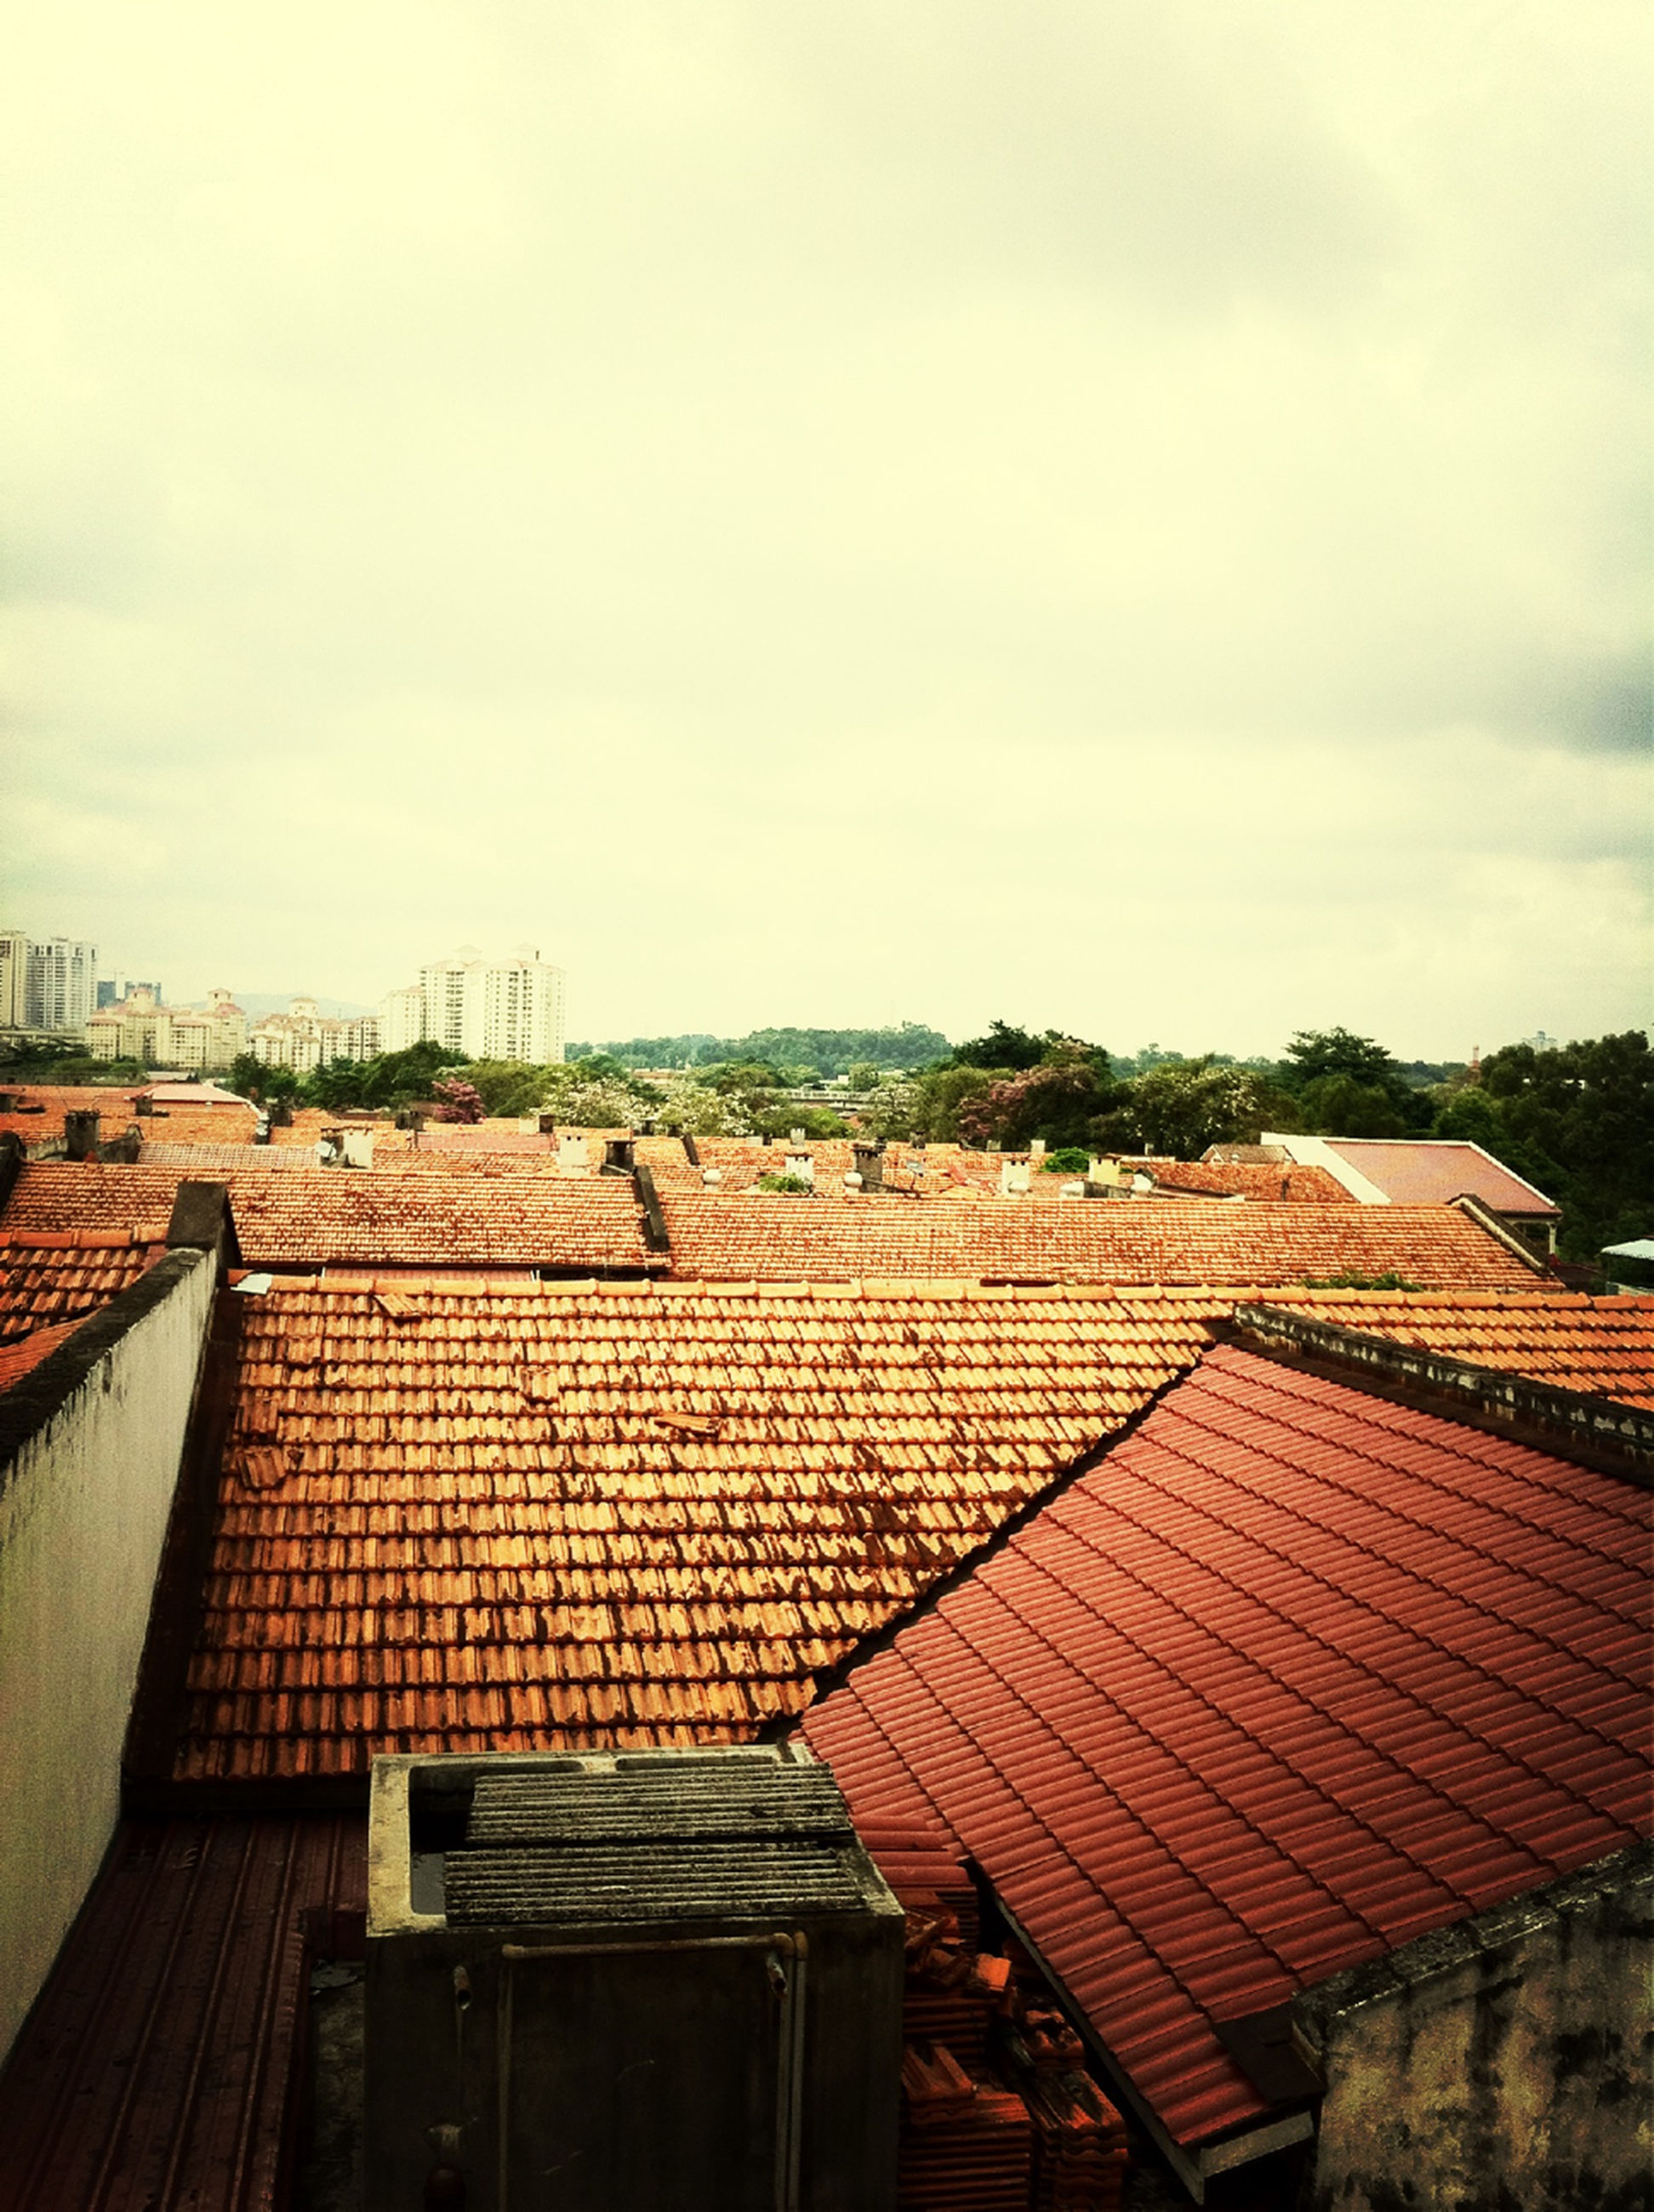 roof, built structure, building exterior, architecture, sky, house, roof tile, cloud - sky, cloud, residential structure, day, outdoors, no people, chair, residential building, town, low angle view, sunlight, rooftop, cloudy